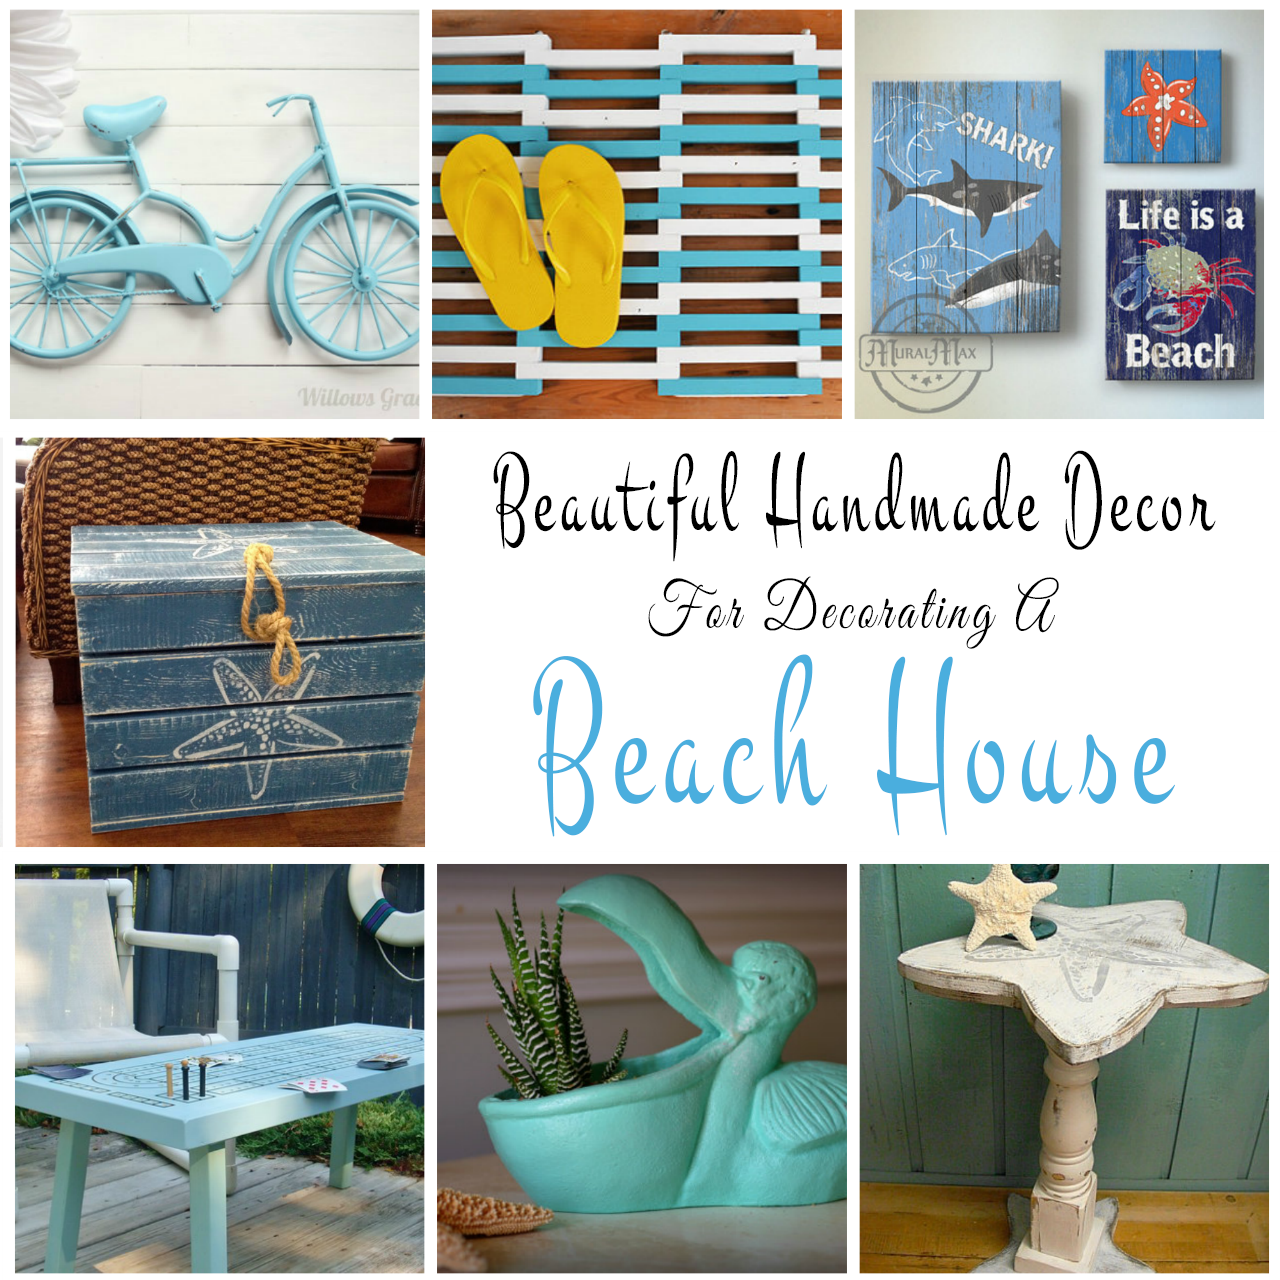 Handmade decor ideas for decorating a beach house for Home design ideas handmade